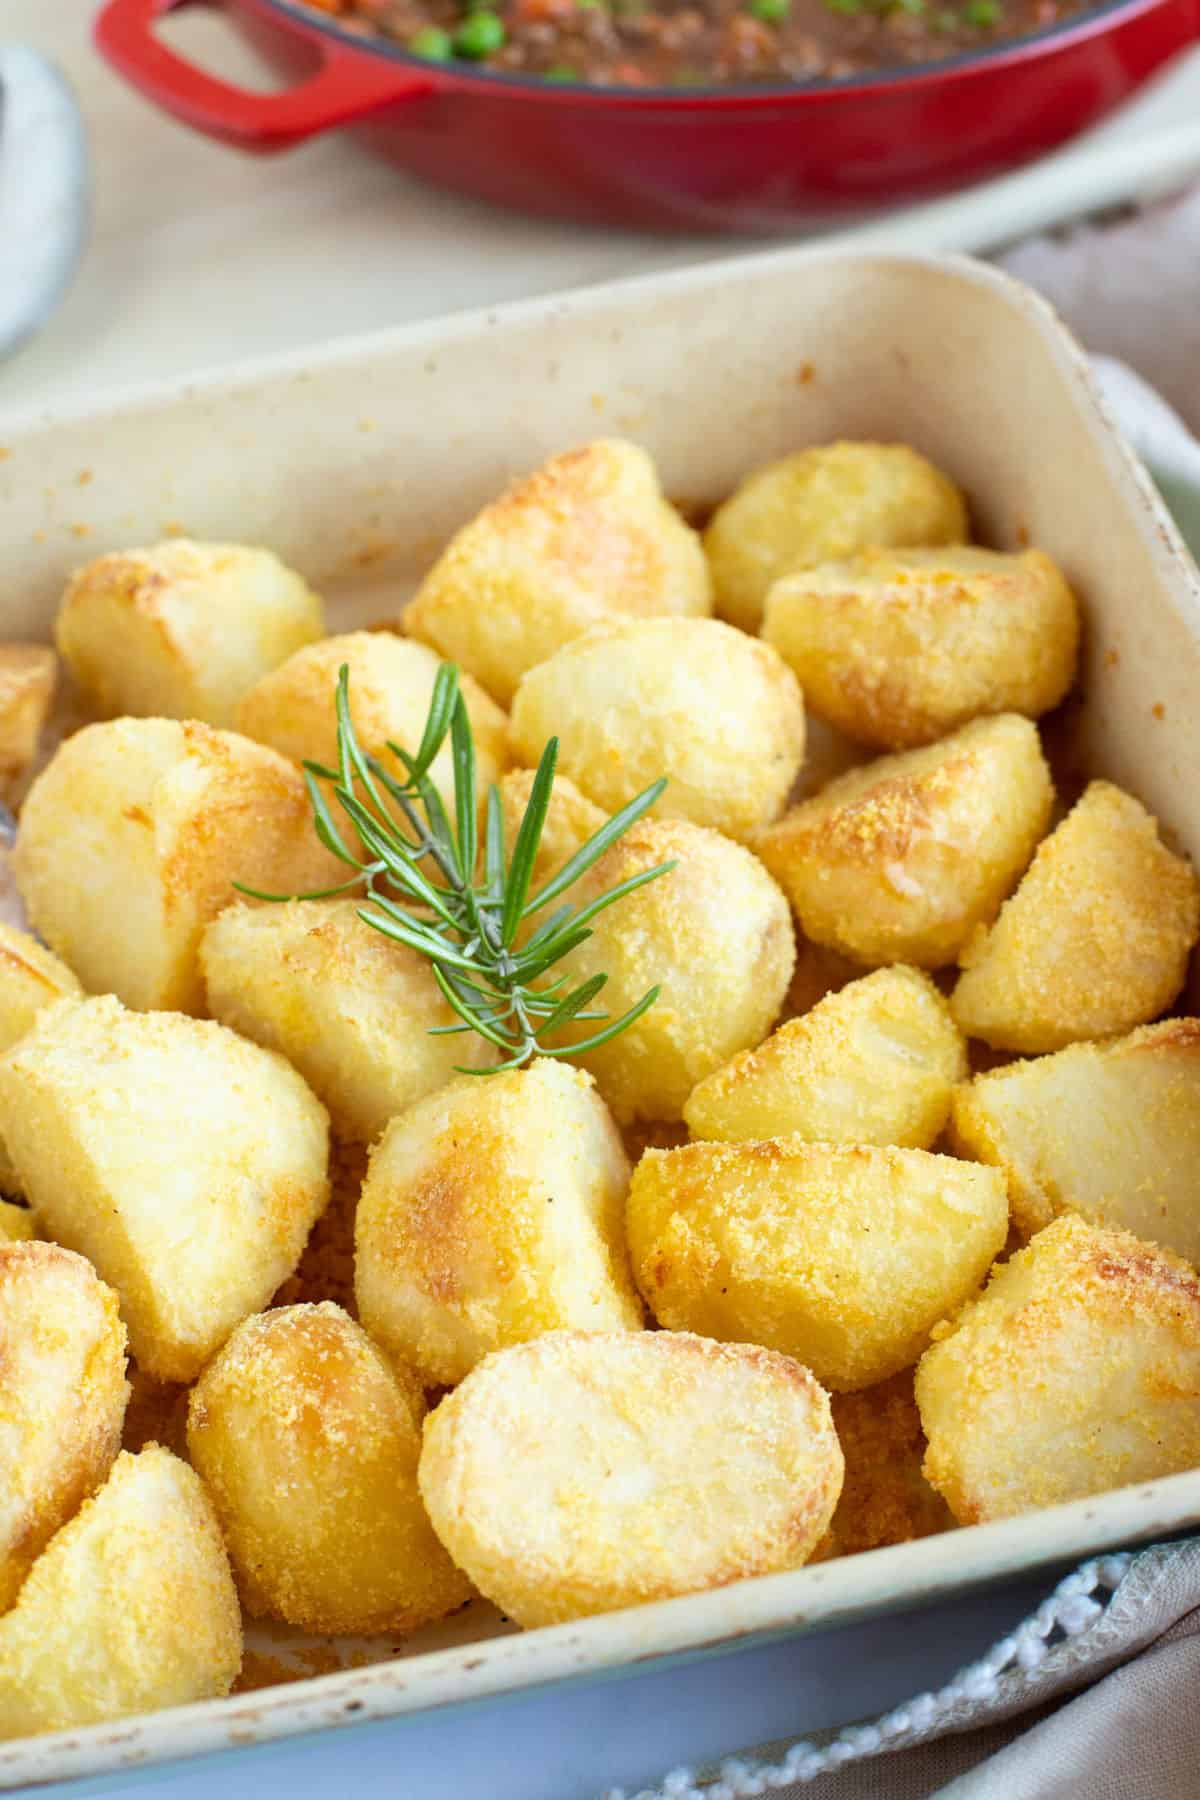 Polenta roasties in a roasting pan.